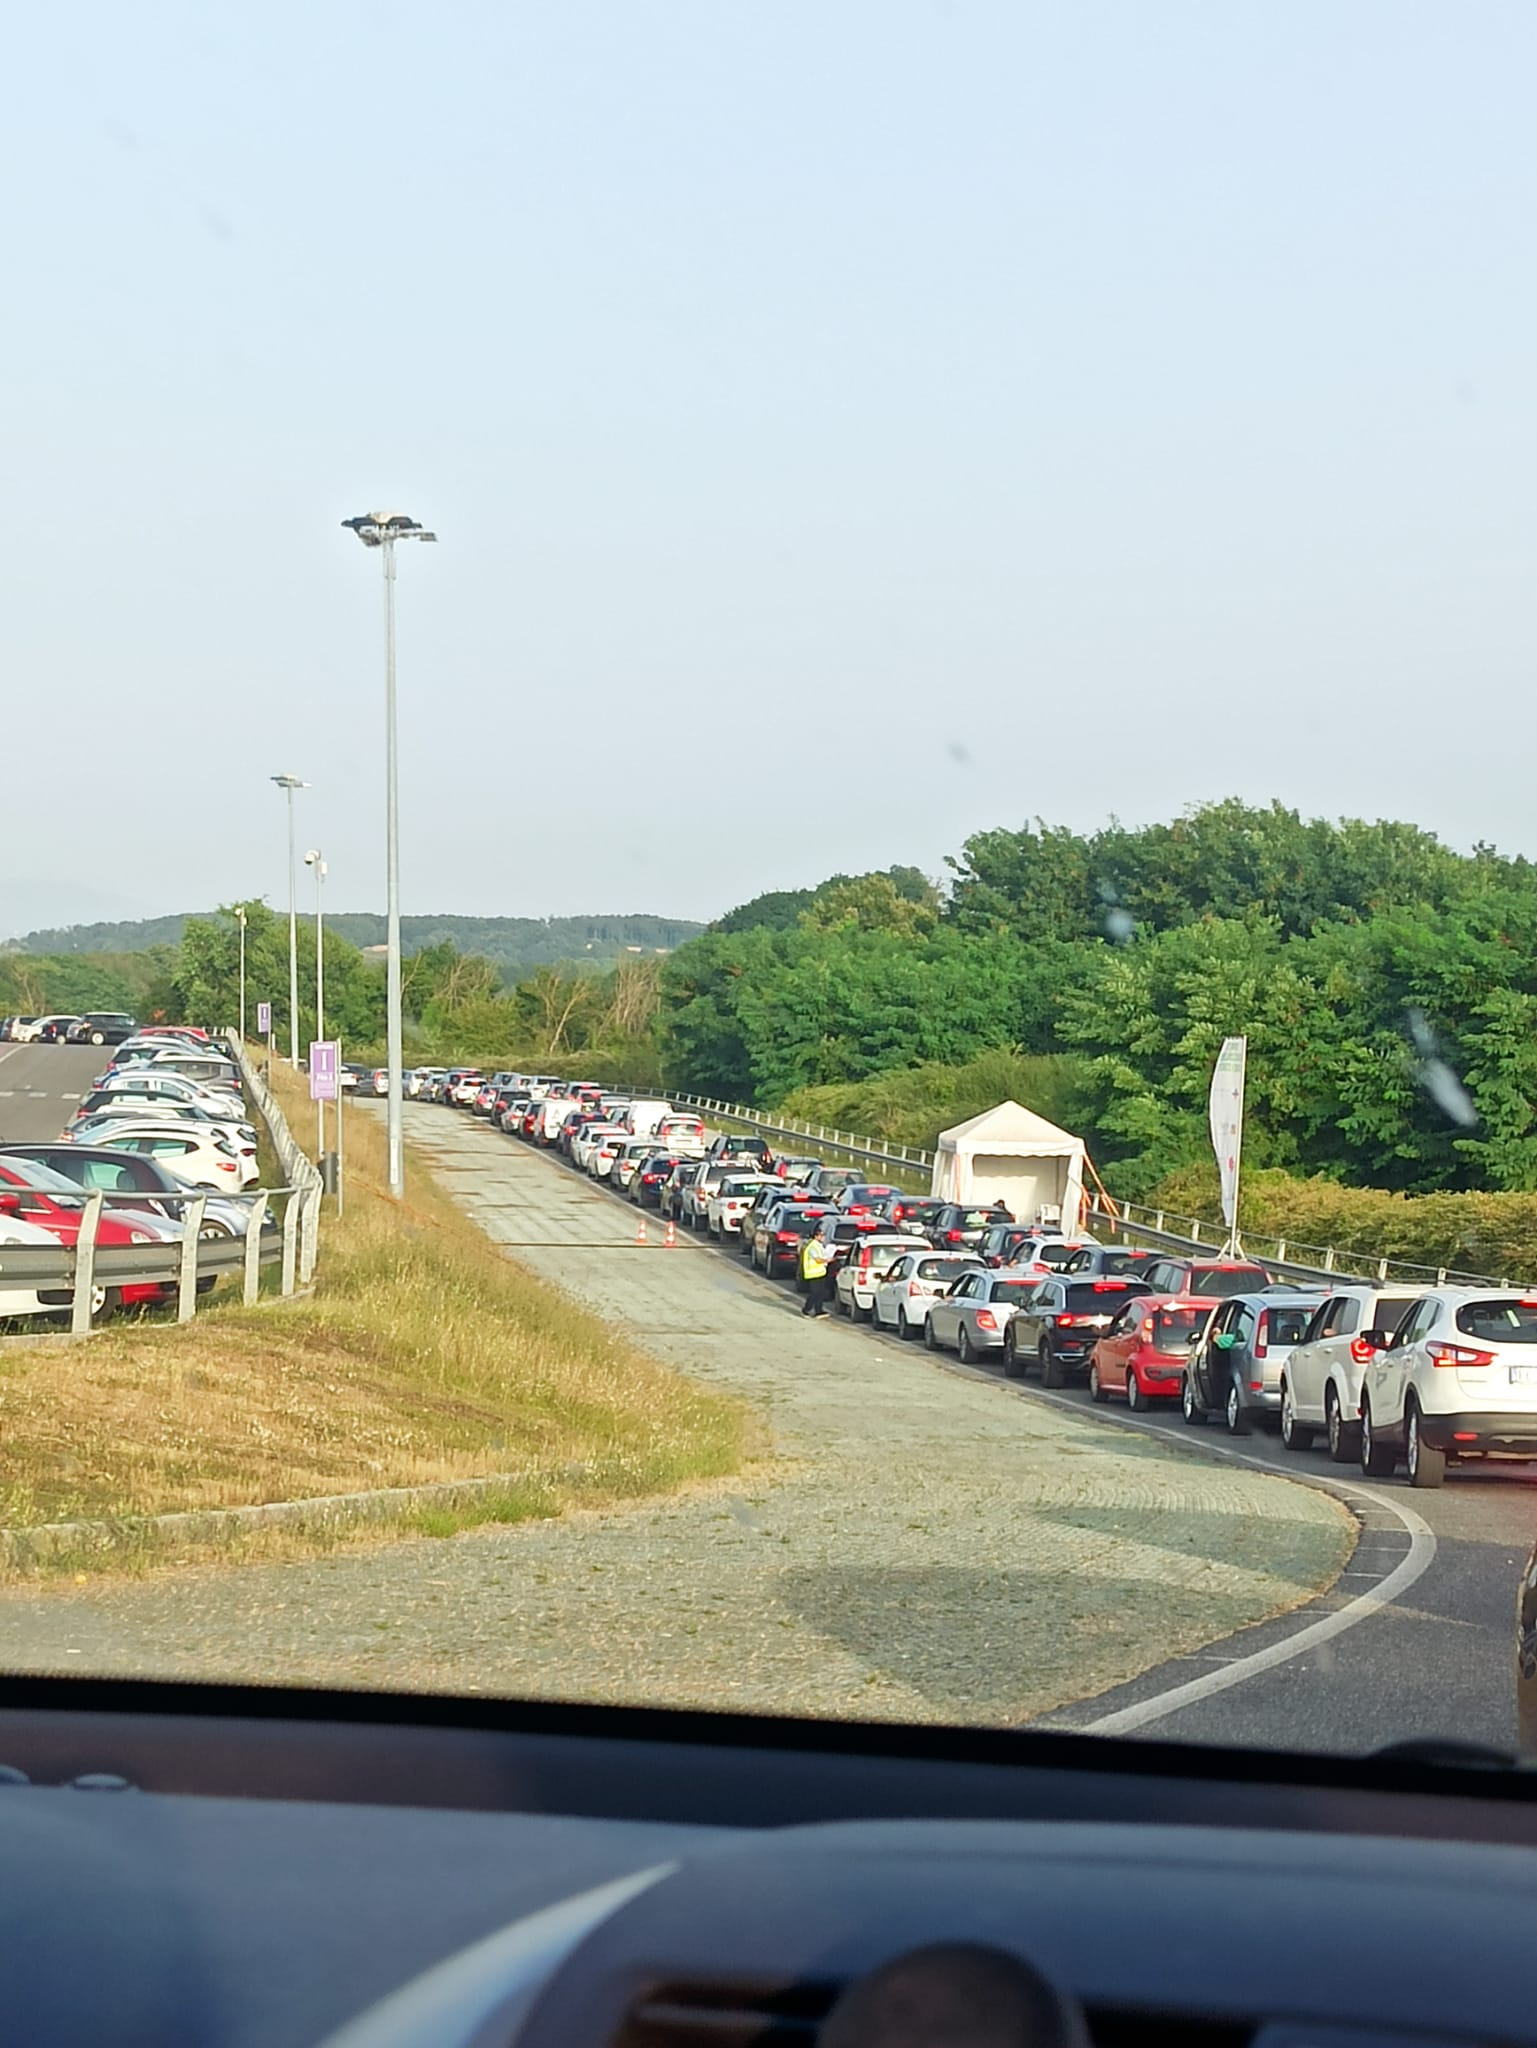 Valmontone, lunghe file al drive in vaccinale dell'Outlet